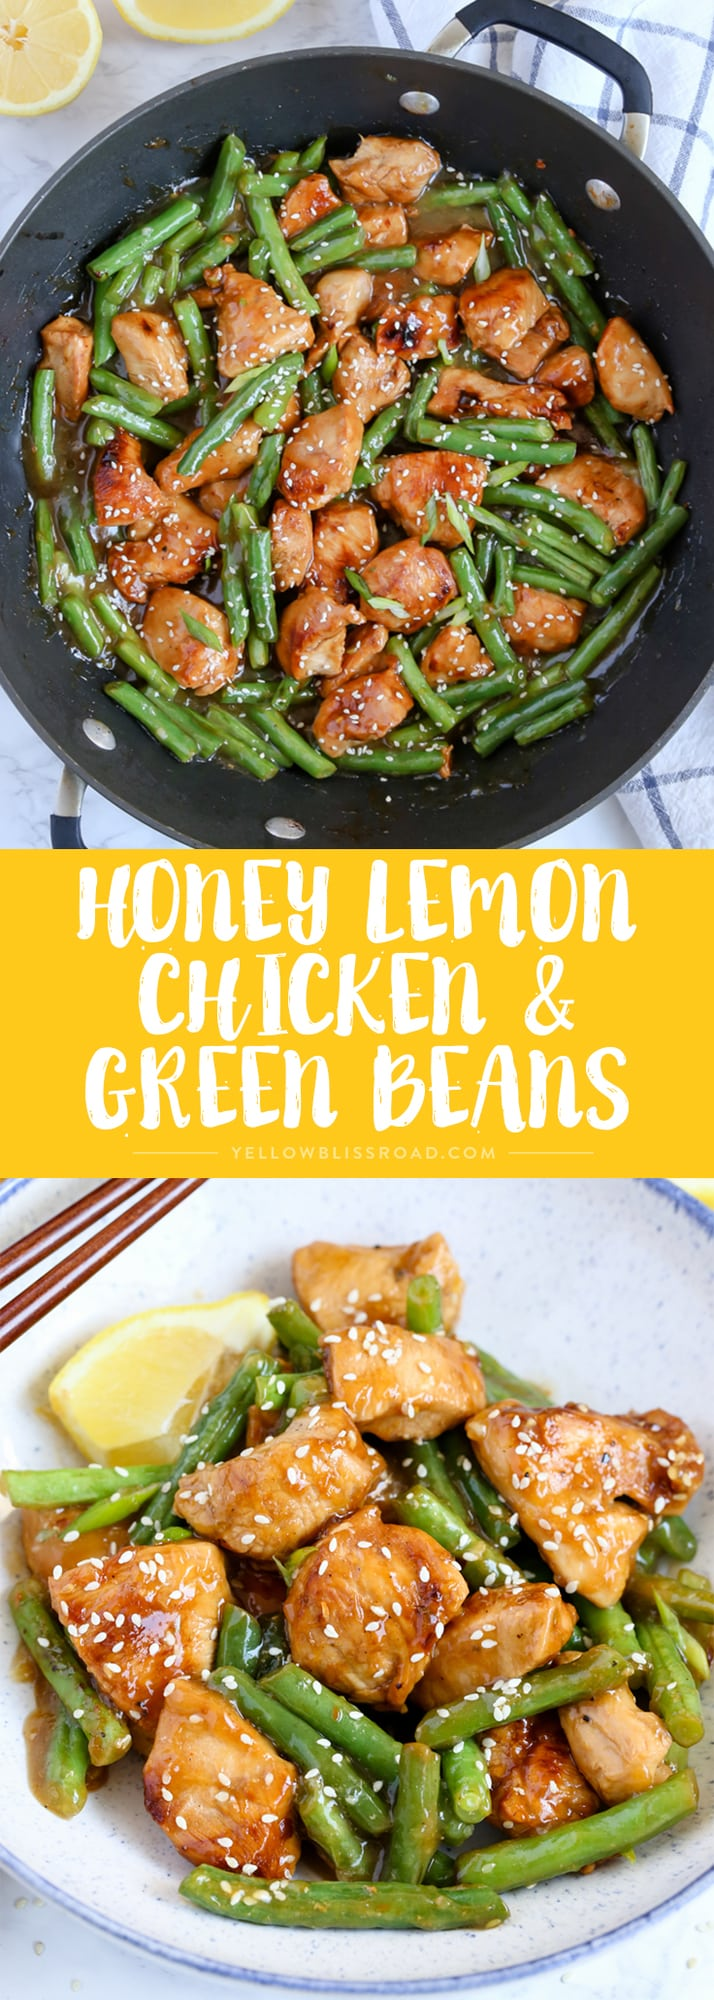 This Honey Lemon Chicken and Green Beans is a light and fresh meal with a ton of flavor. Dinner is on the table in just 20 minutes!